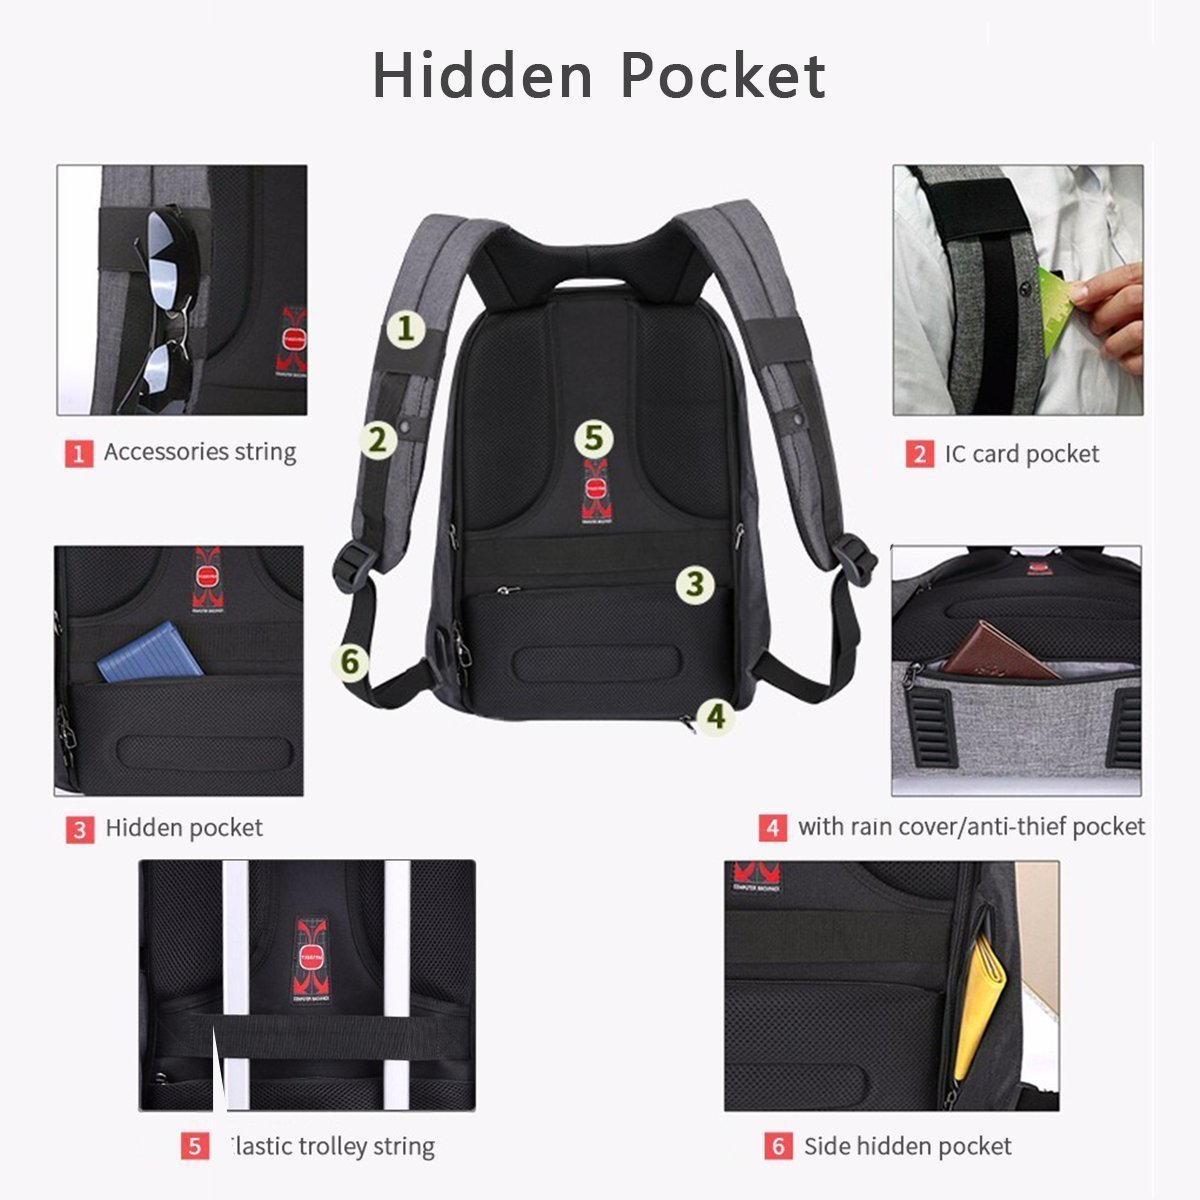 kopack 17 inch Anti Theft Laptop Backpack Waterproof Travel Backpack Rain Cover/USB Business Scan Smart by kopack (Image #6)